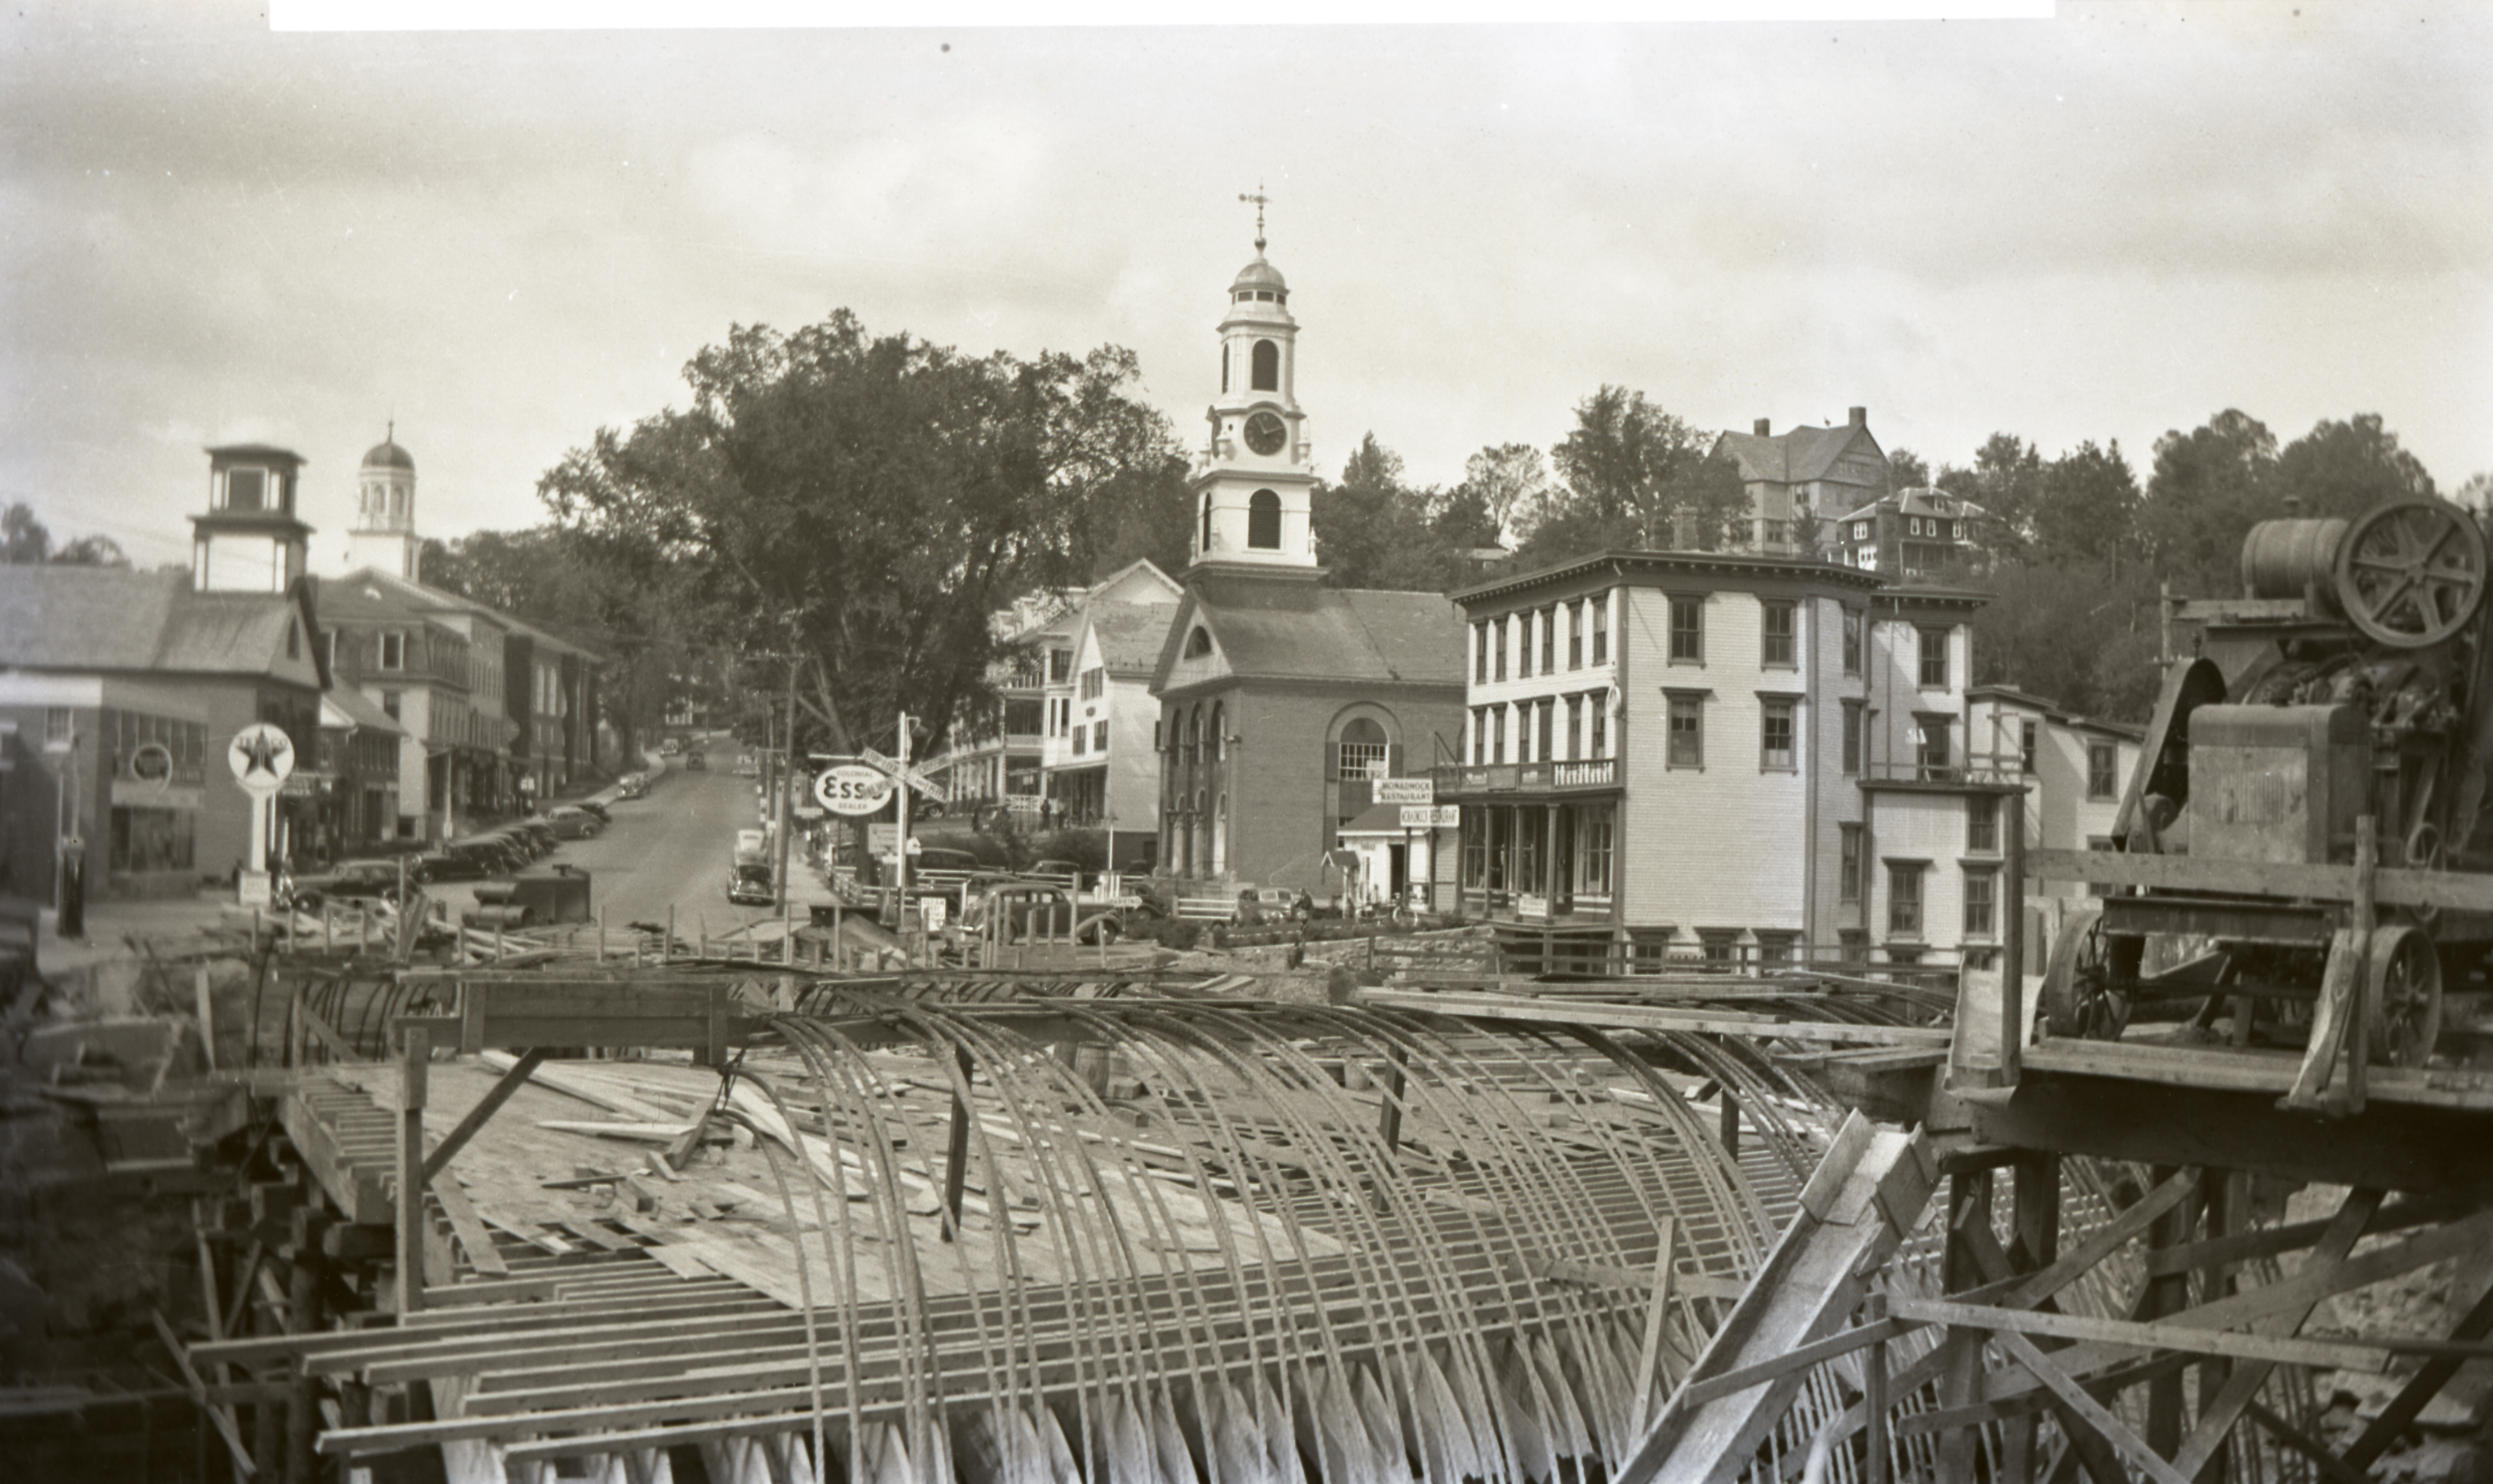 1940 Bridge Construction - Formwork & Reinforcing Looking NW